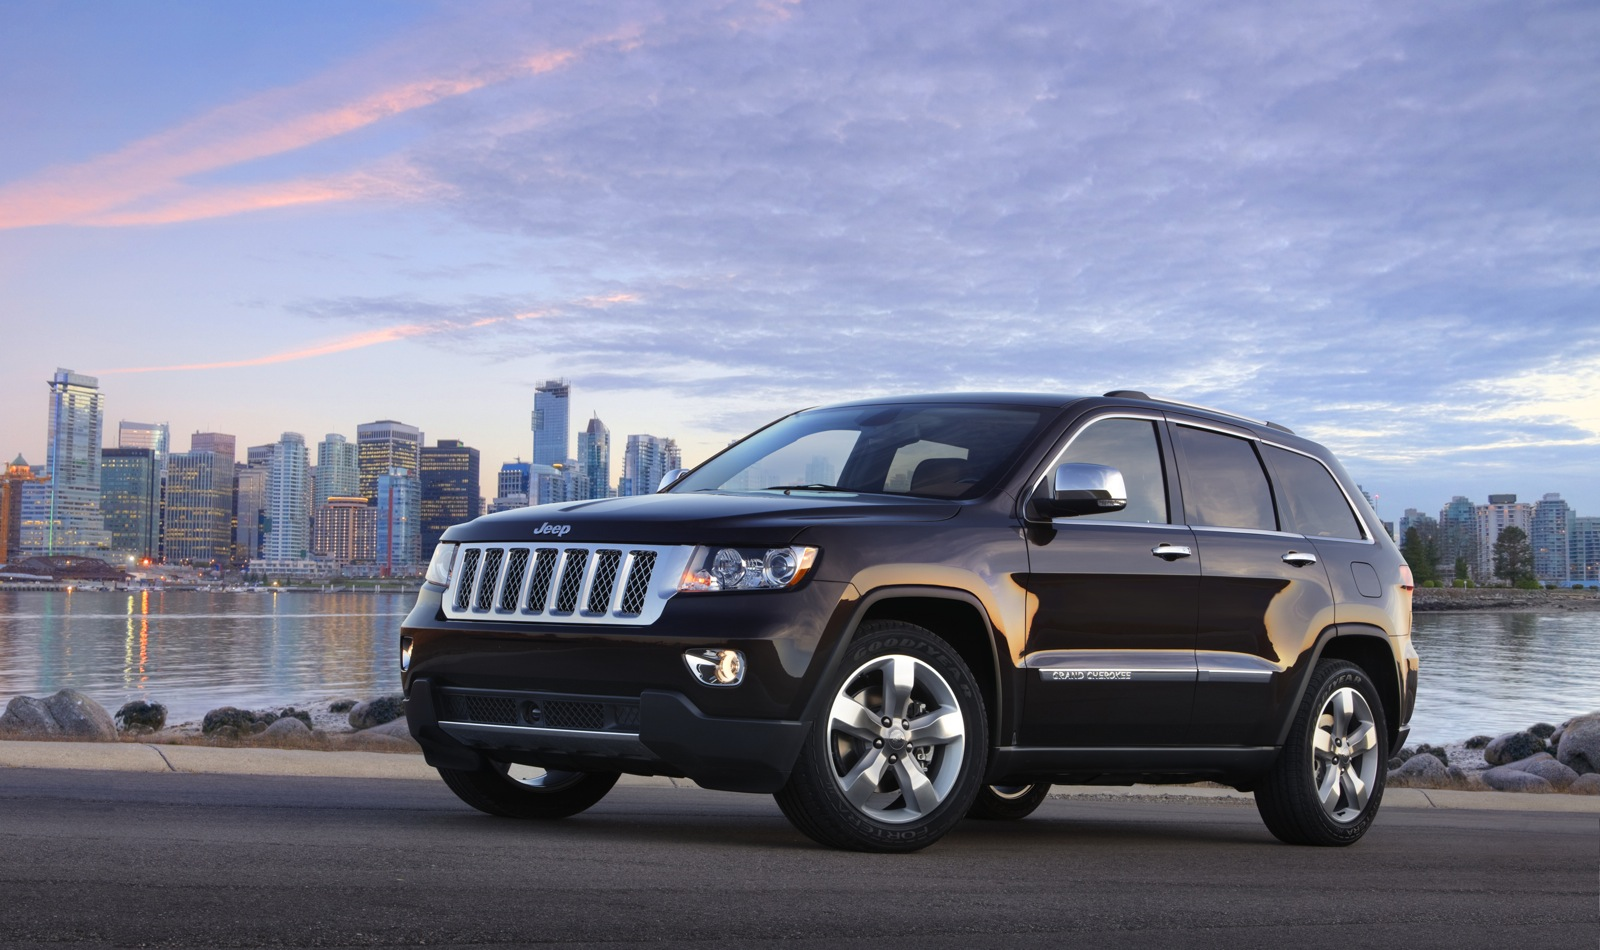 2011-2014 dodge durango, jeep grand cherokee recalled due to